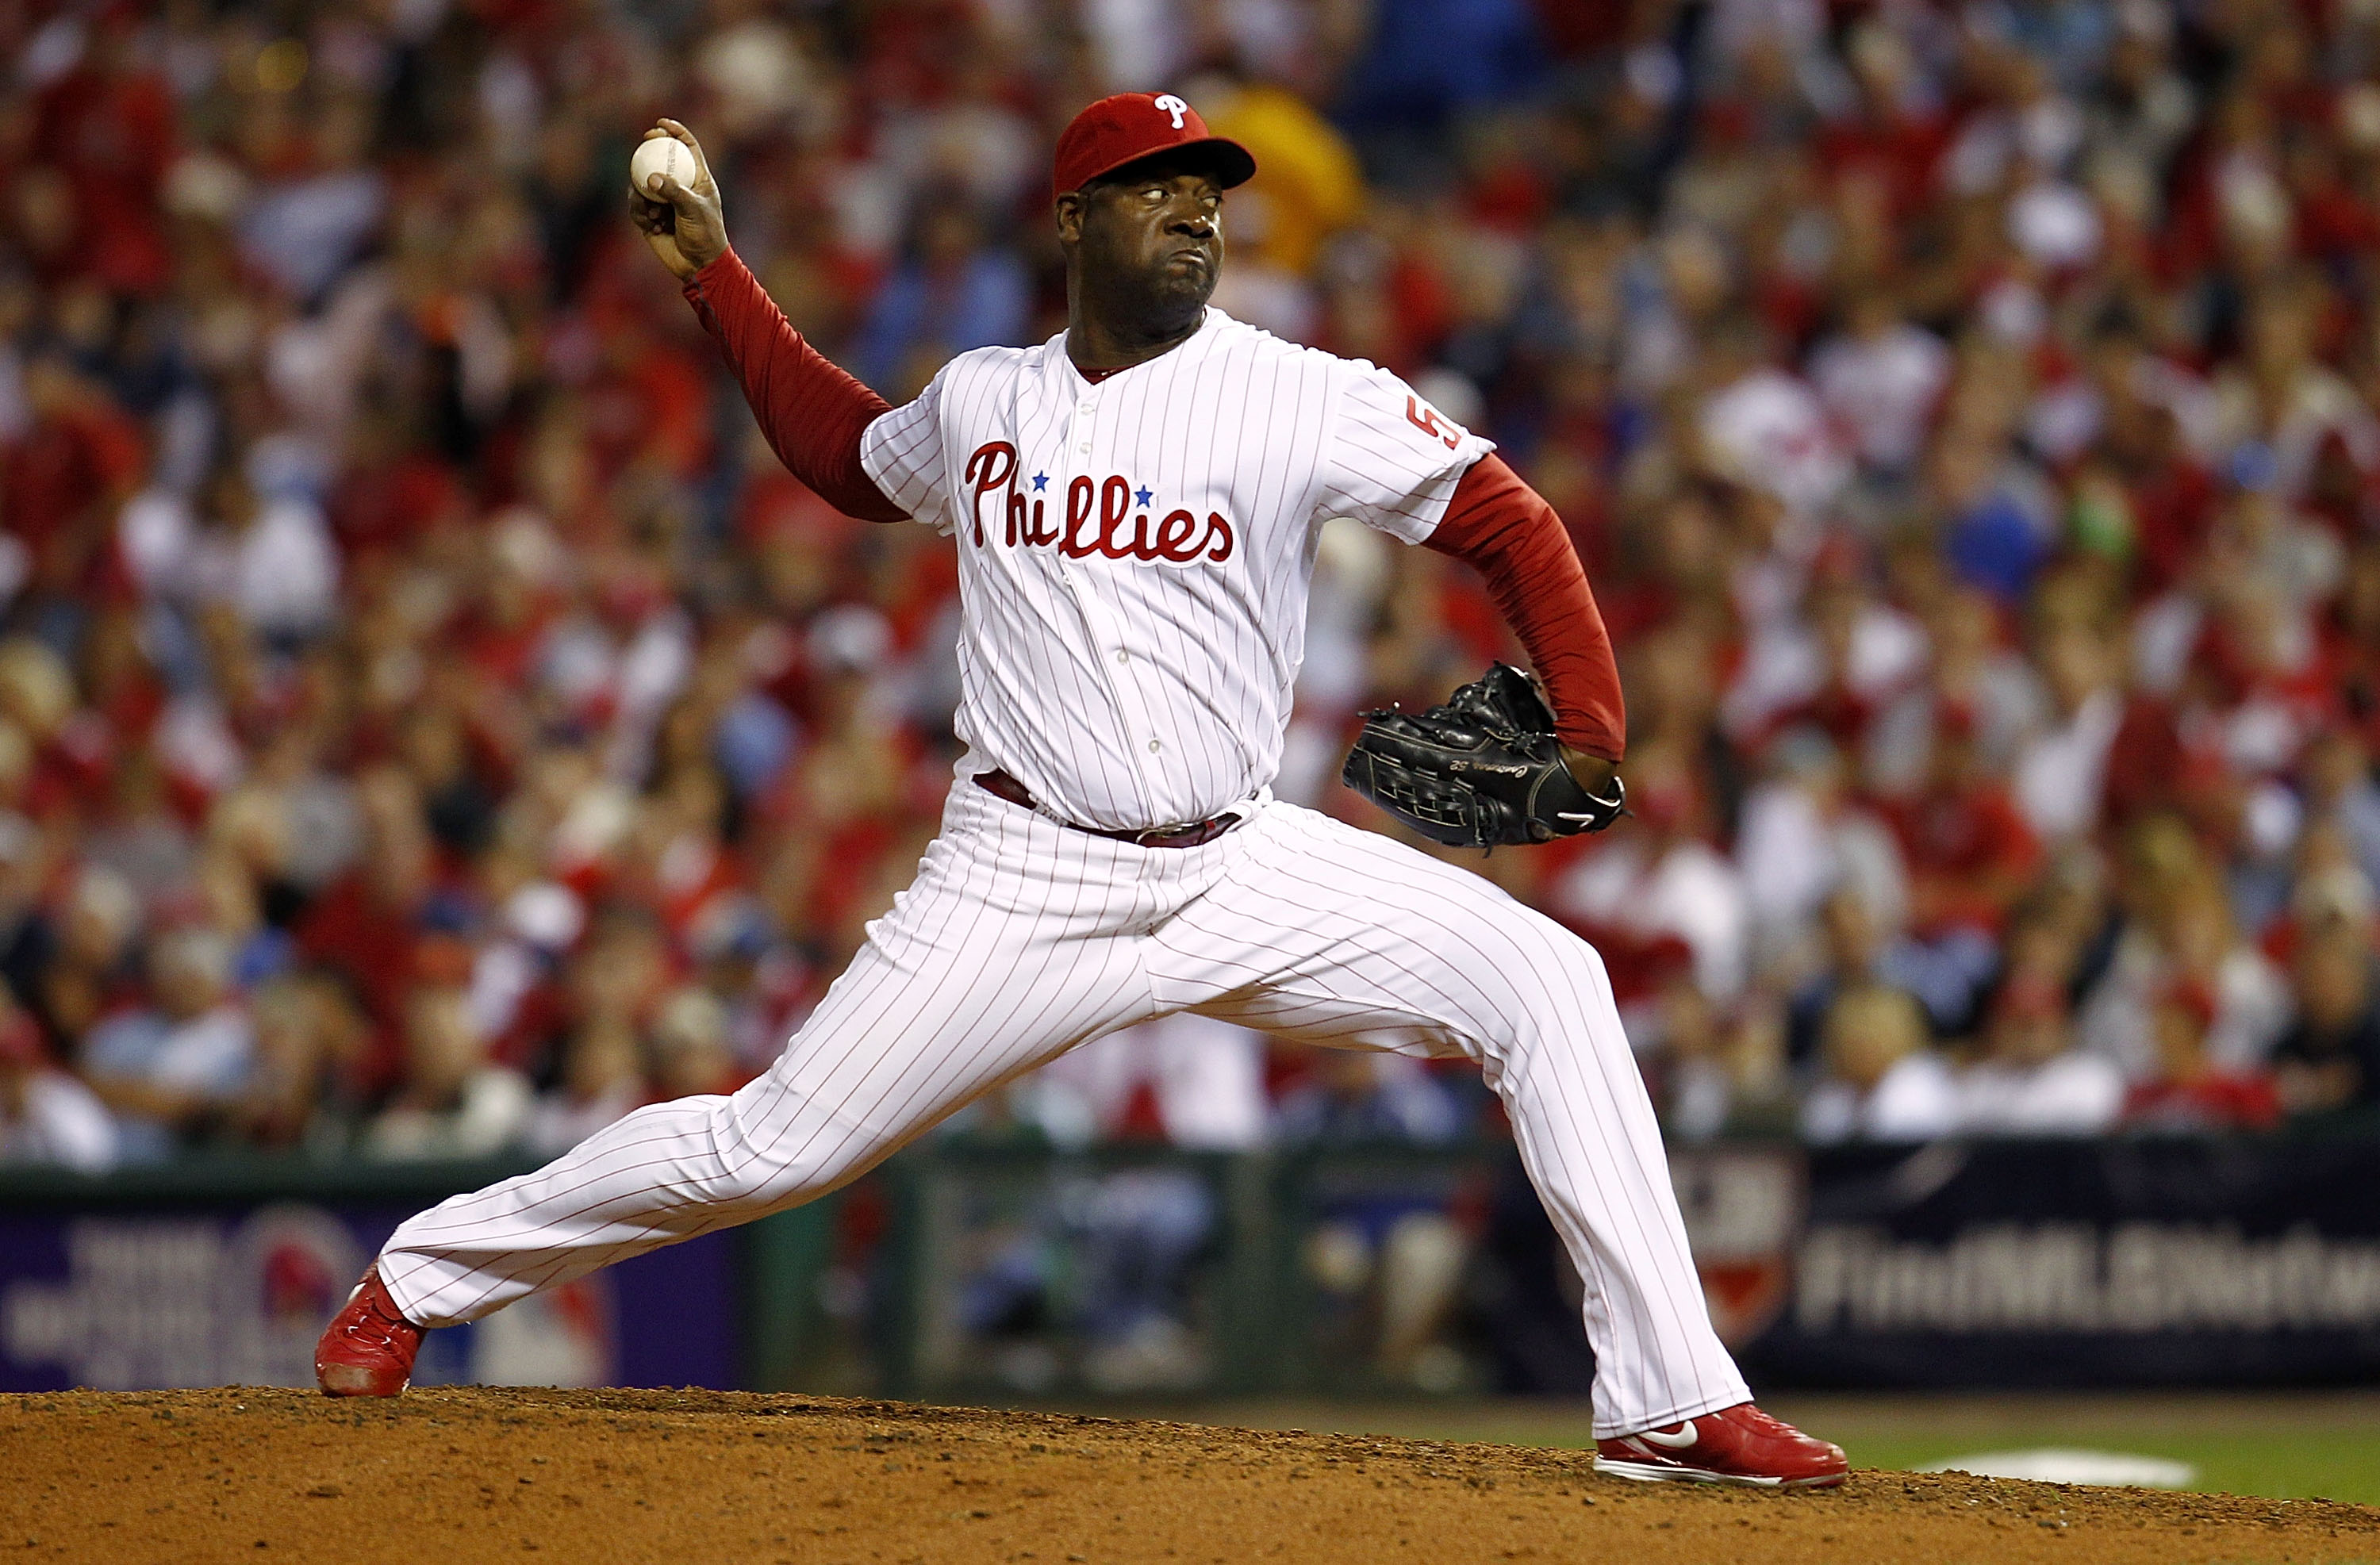 PHILADELPHIA - OCTOBER 08:  Jose Contreras #52 of the Philadelphia Phillies pitches against the Cincinnati Reds in Game 2 of the NLDS at Citizens Bank Park on October 8, 2010 in Philadelphia, Pennsylvania.  (Photo by Jeff Zelevansky/Getty Images)